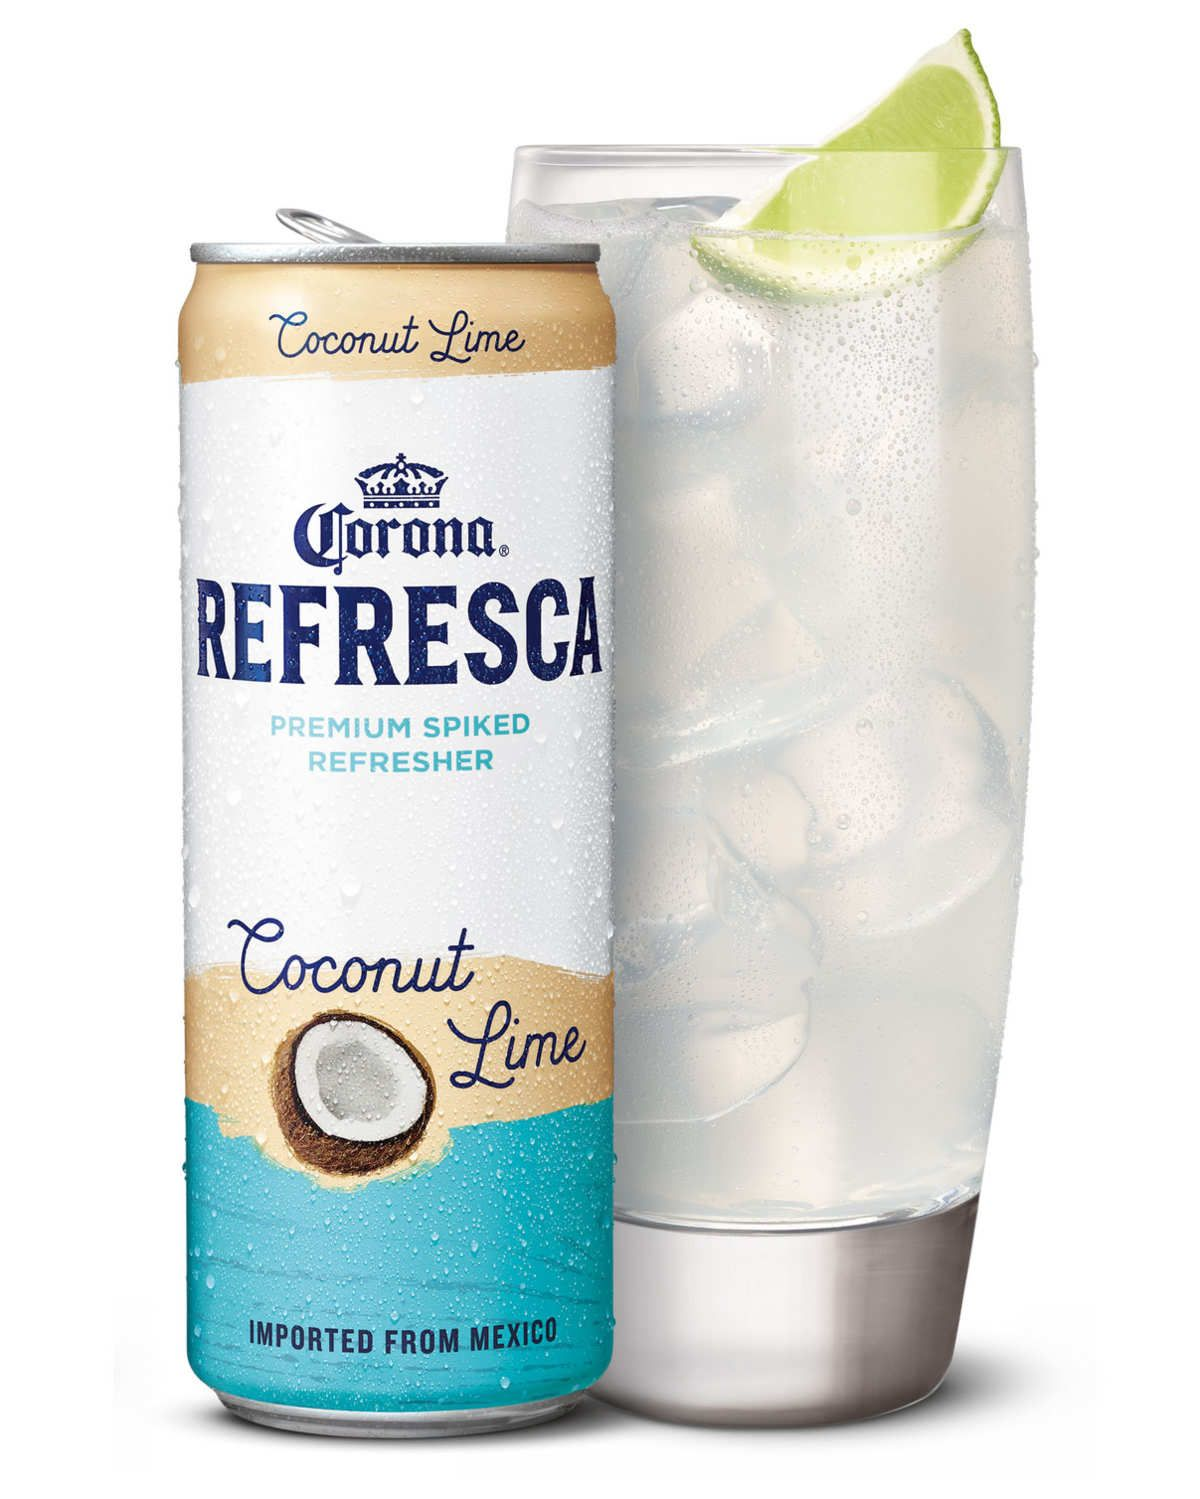 Corona Is Launching Coconut Lime Flavored Beer New Corona Refresca Flavors